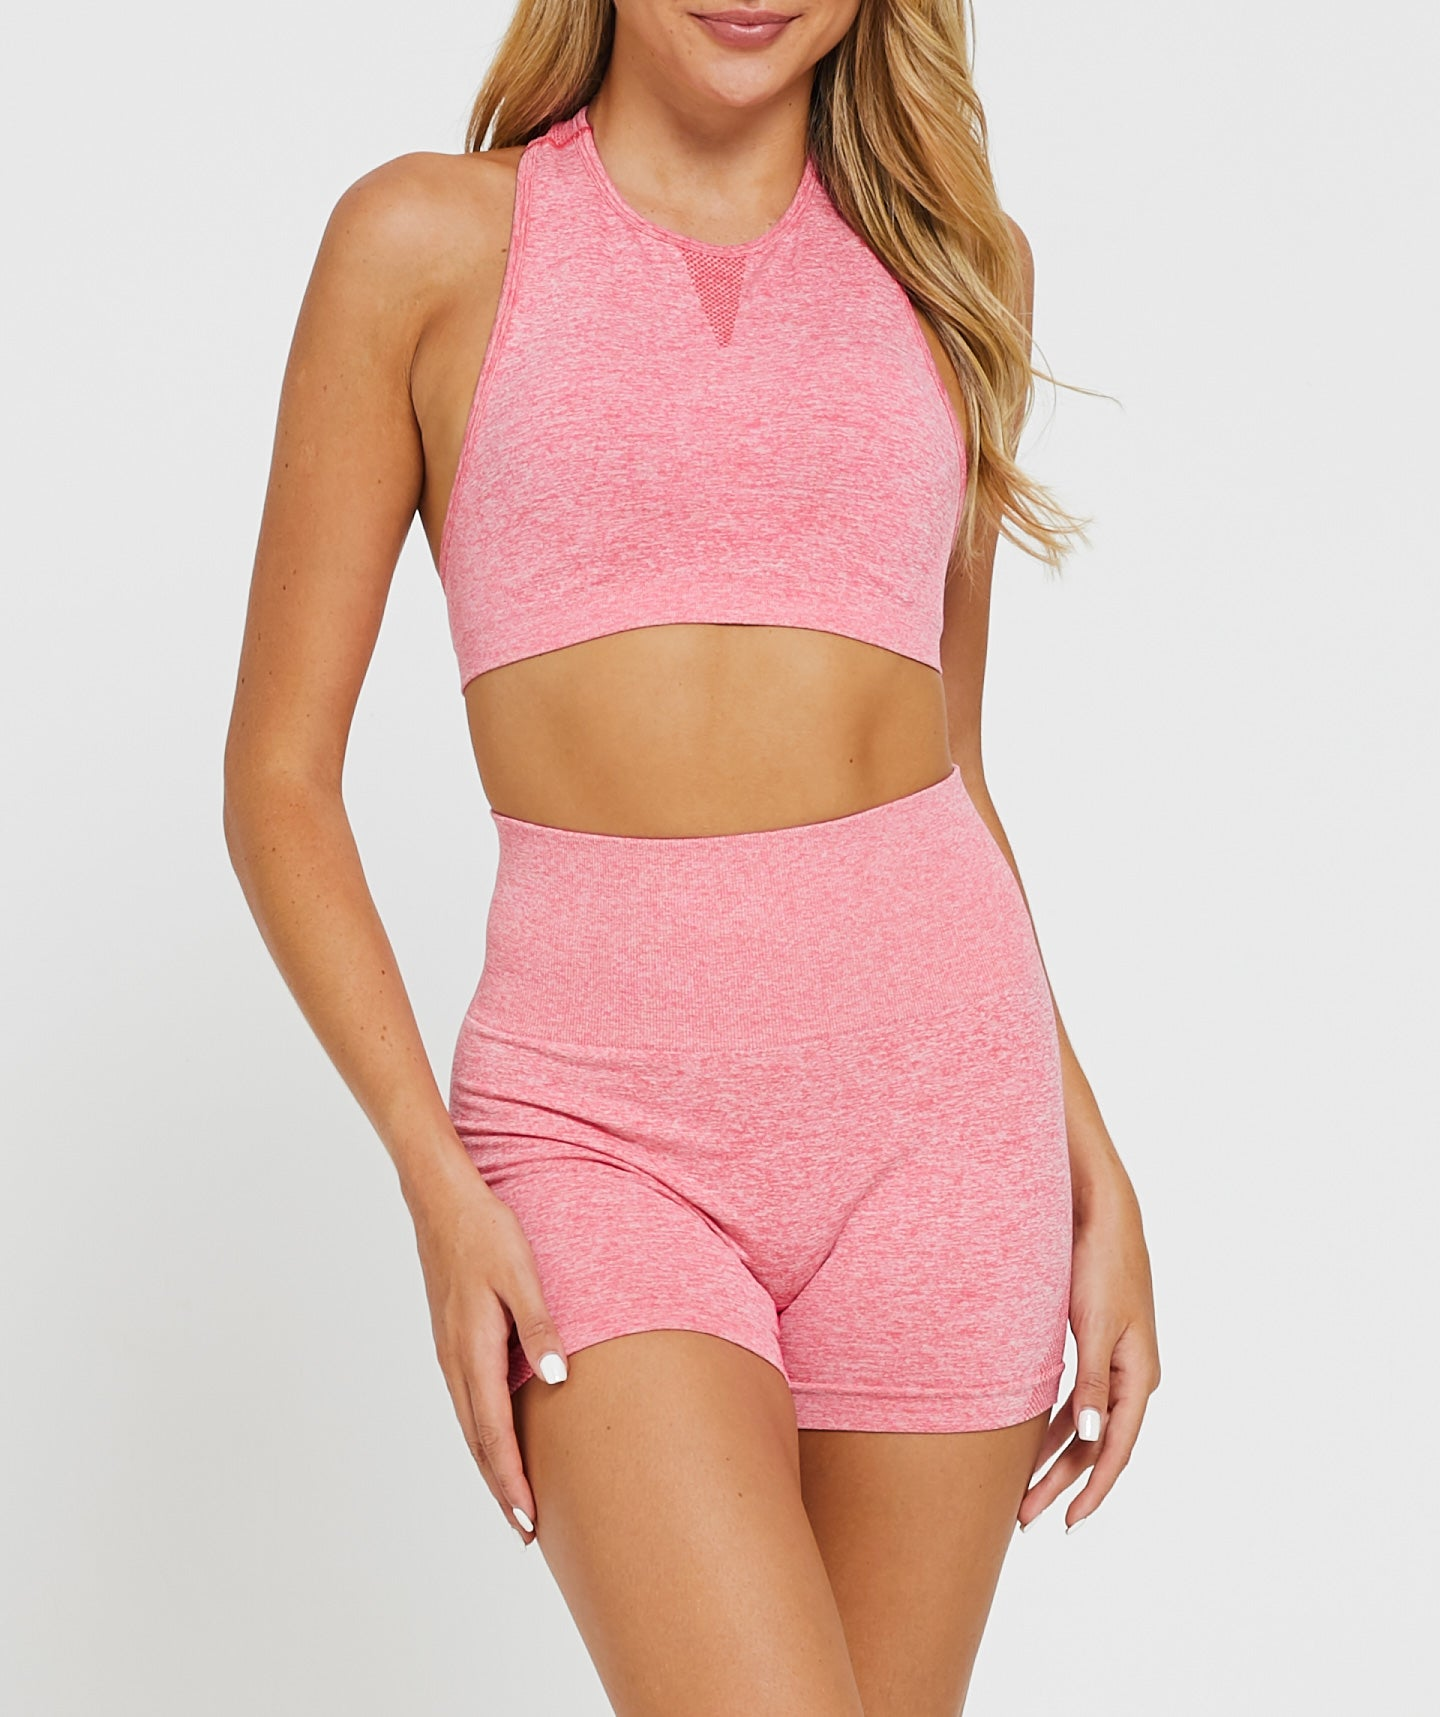 Tempo Pink Fitness Set